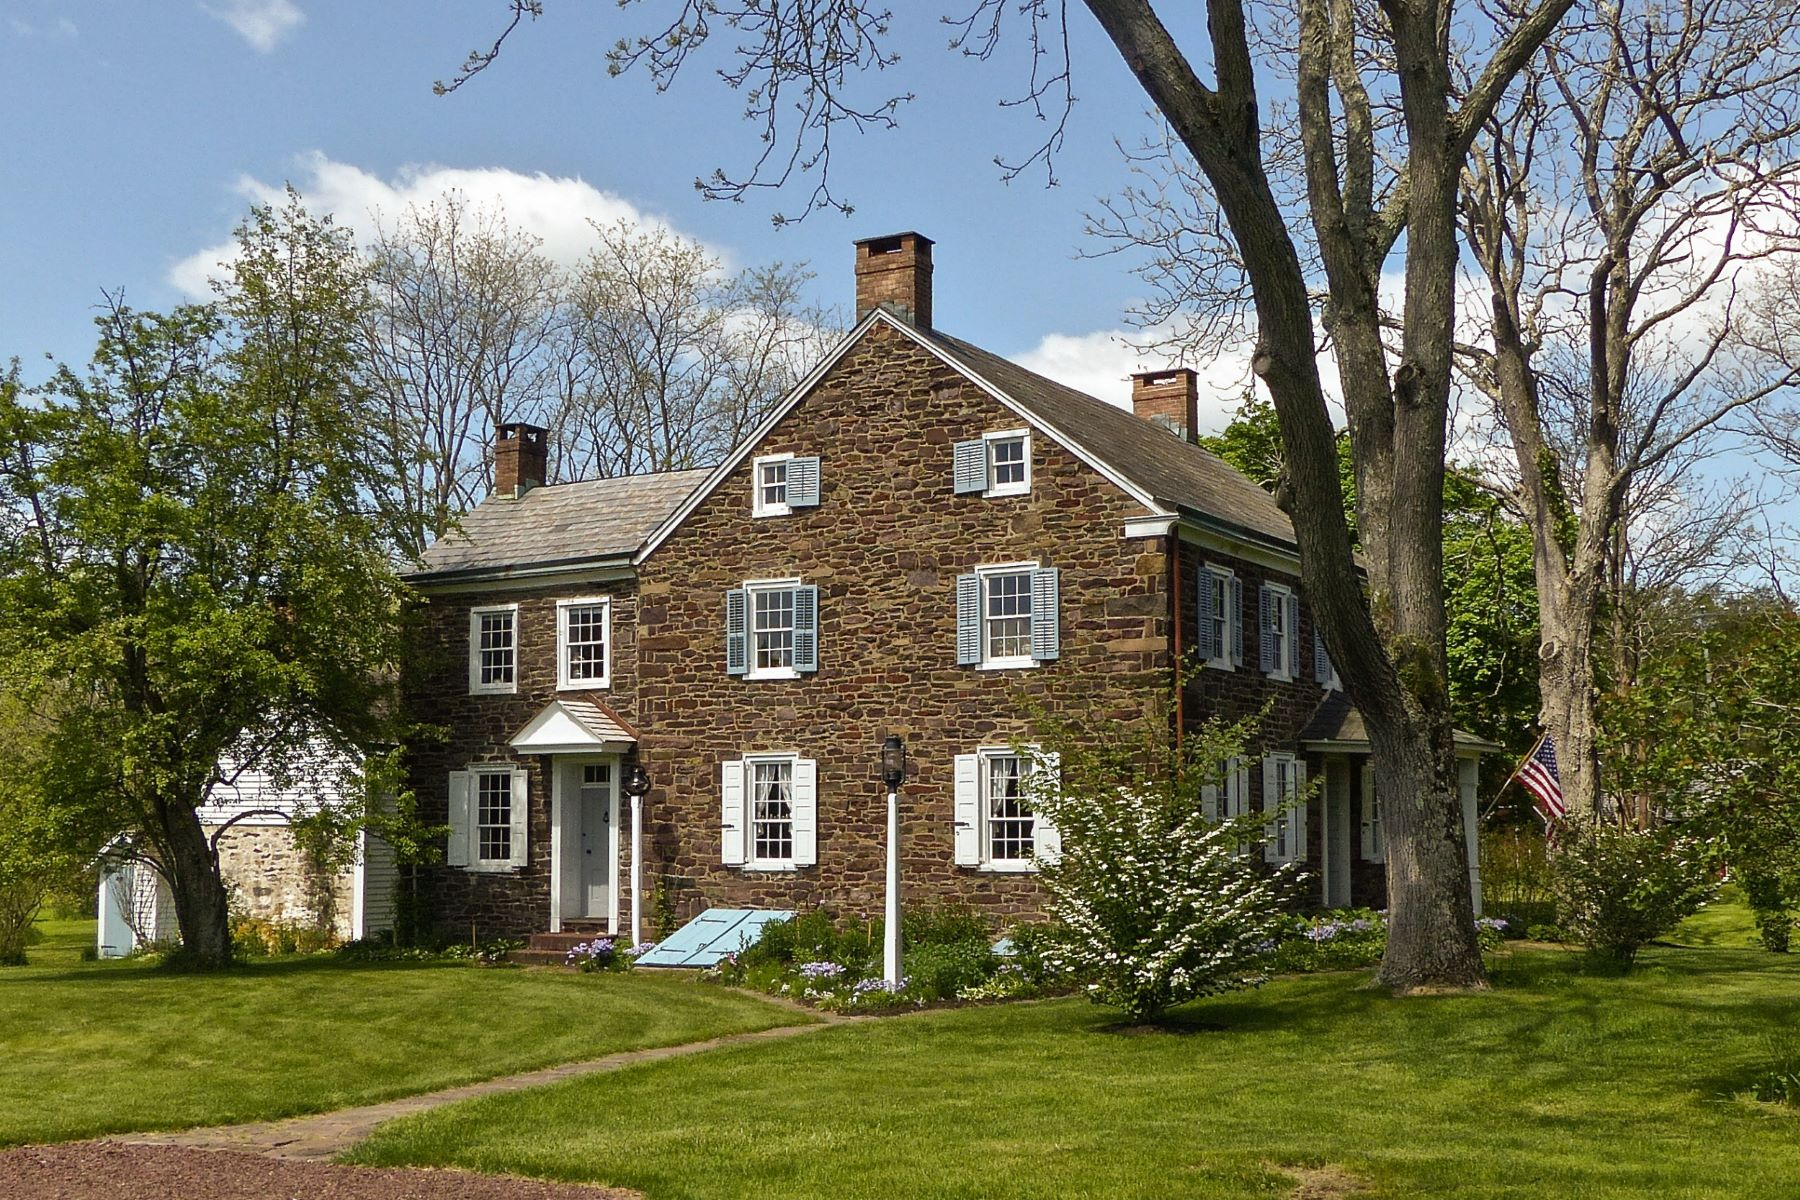 Single Family Home for Sale at Historic PA German Farmstead 721 HEADQUARTERS RD Ottsville, Pennsylvania 18942 United States